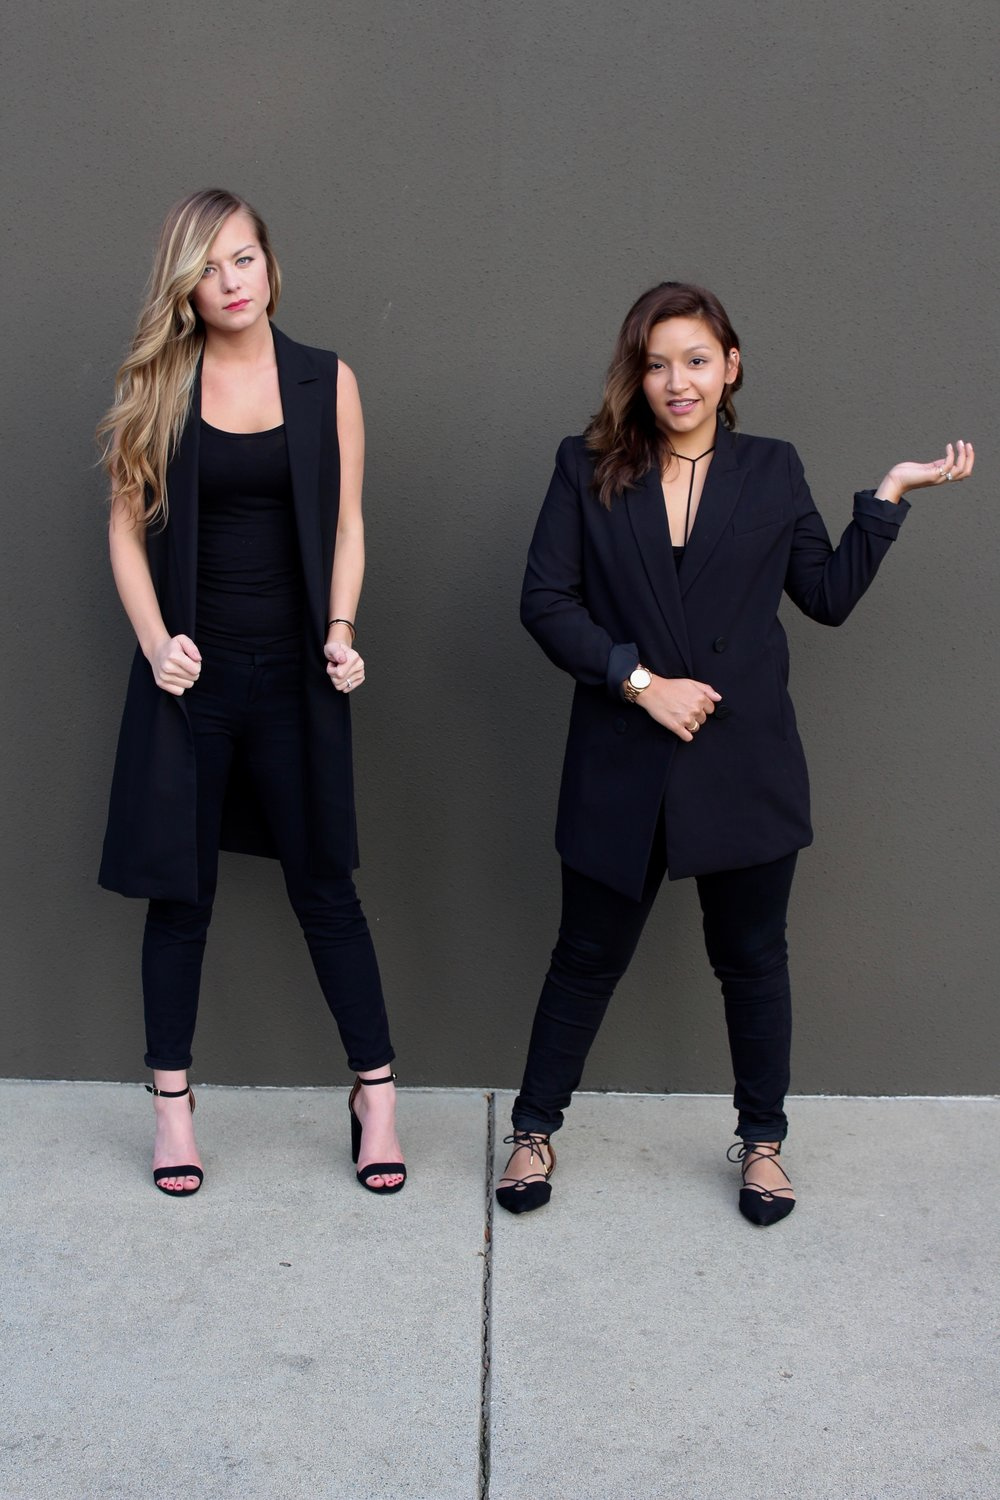 Women's Fall Fashion inspired by menswear. Tailored blazers and fitted slacks